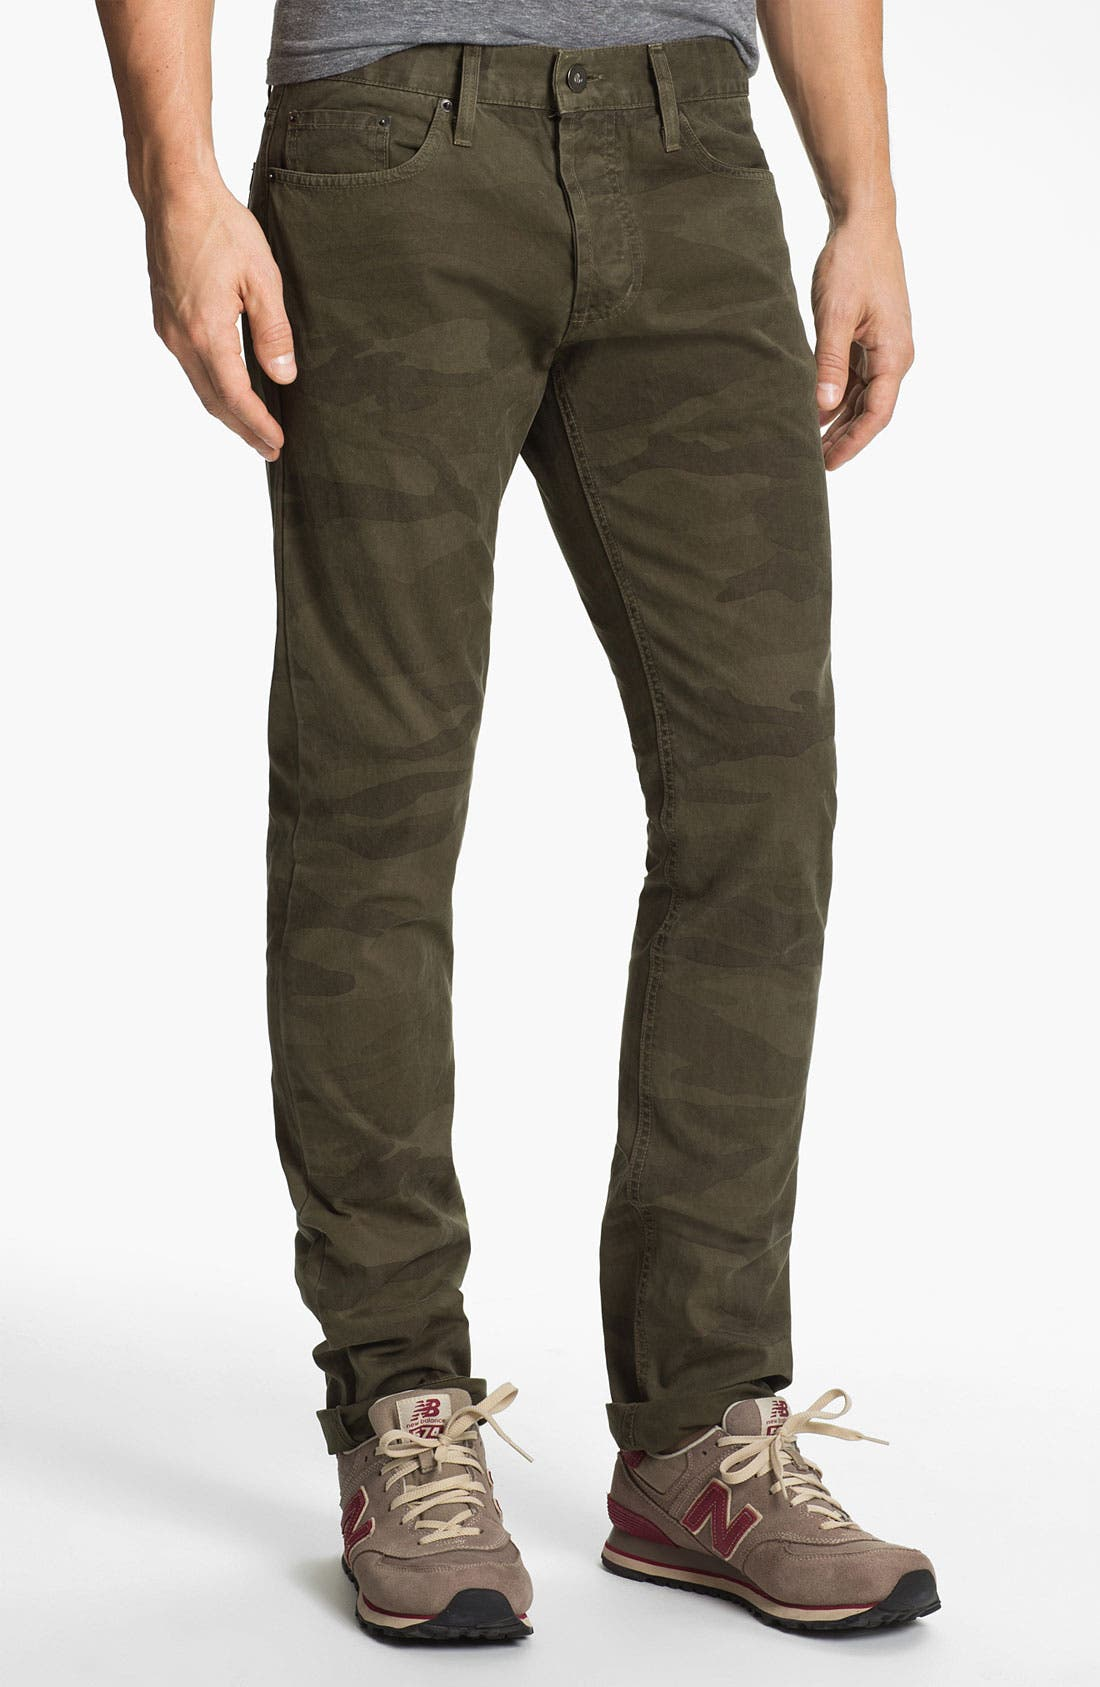 Alternate Image 1 Selected - Splendid Mills 'Renegade' Slim Straight Leg Jeans (Trooper)